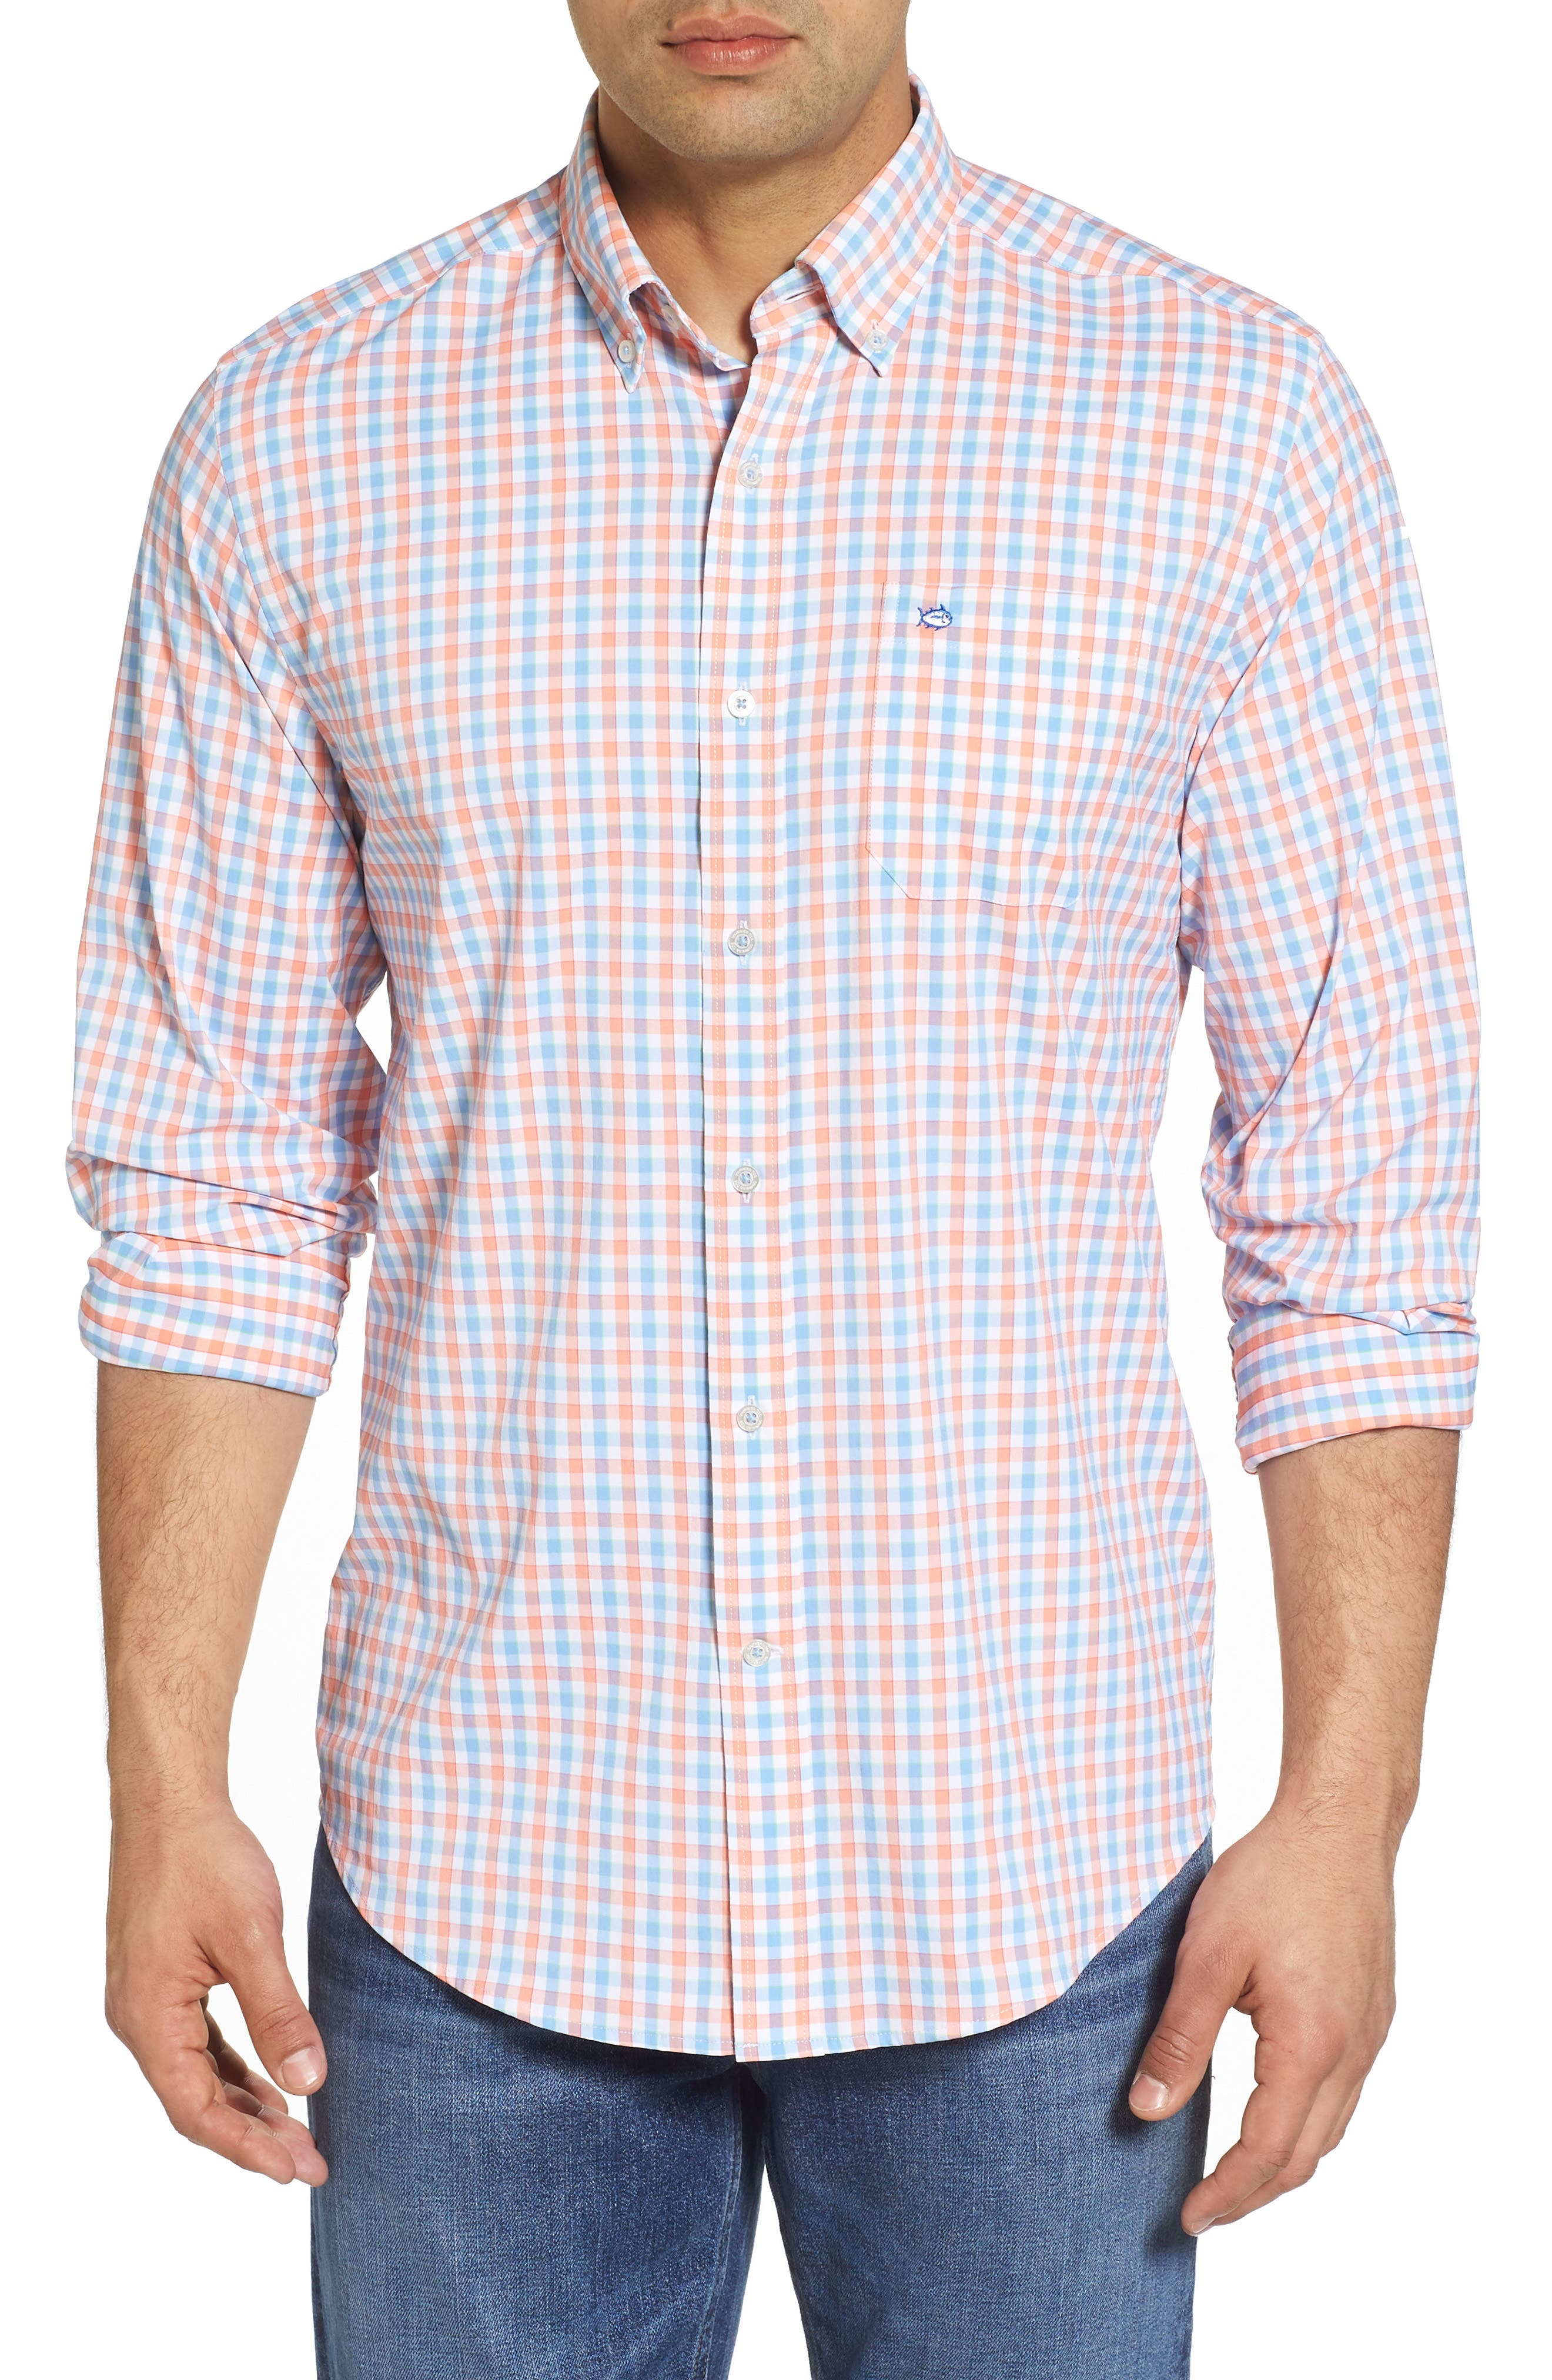 Market Square Regular Fit Stretch Check Sport Shirt,                         Main,                         color, Nectar Coral